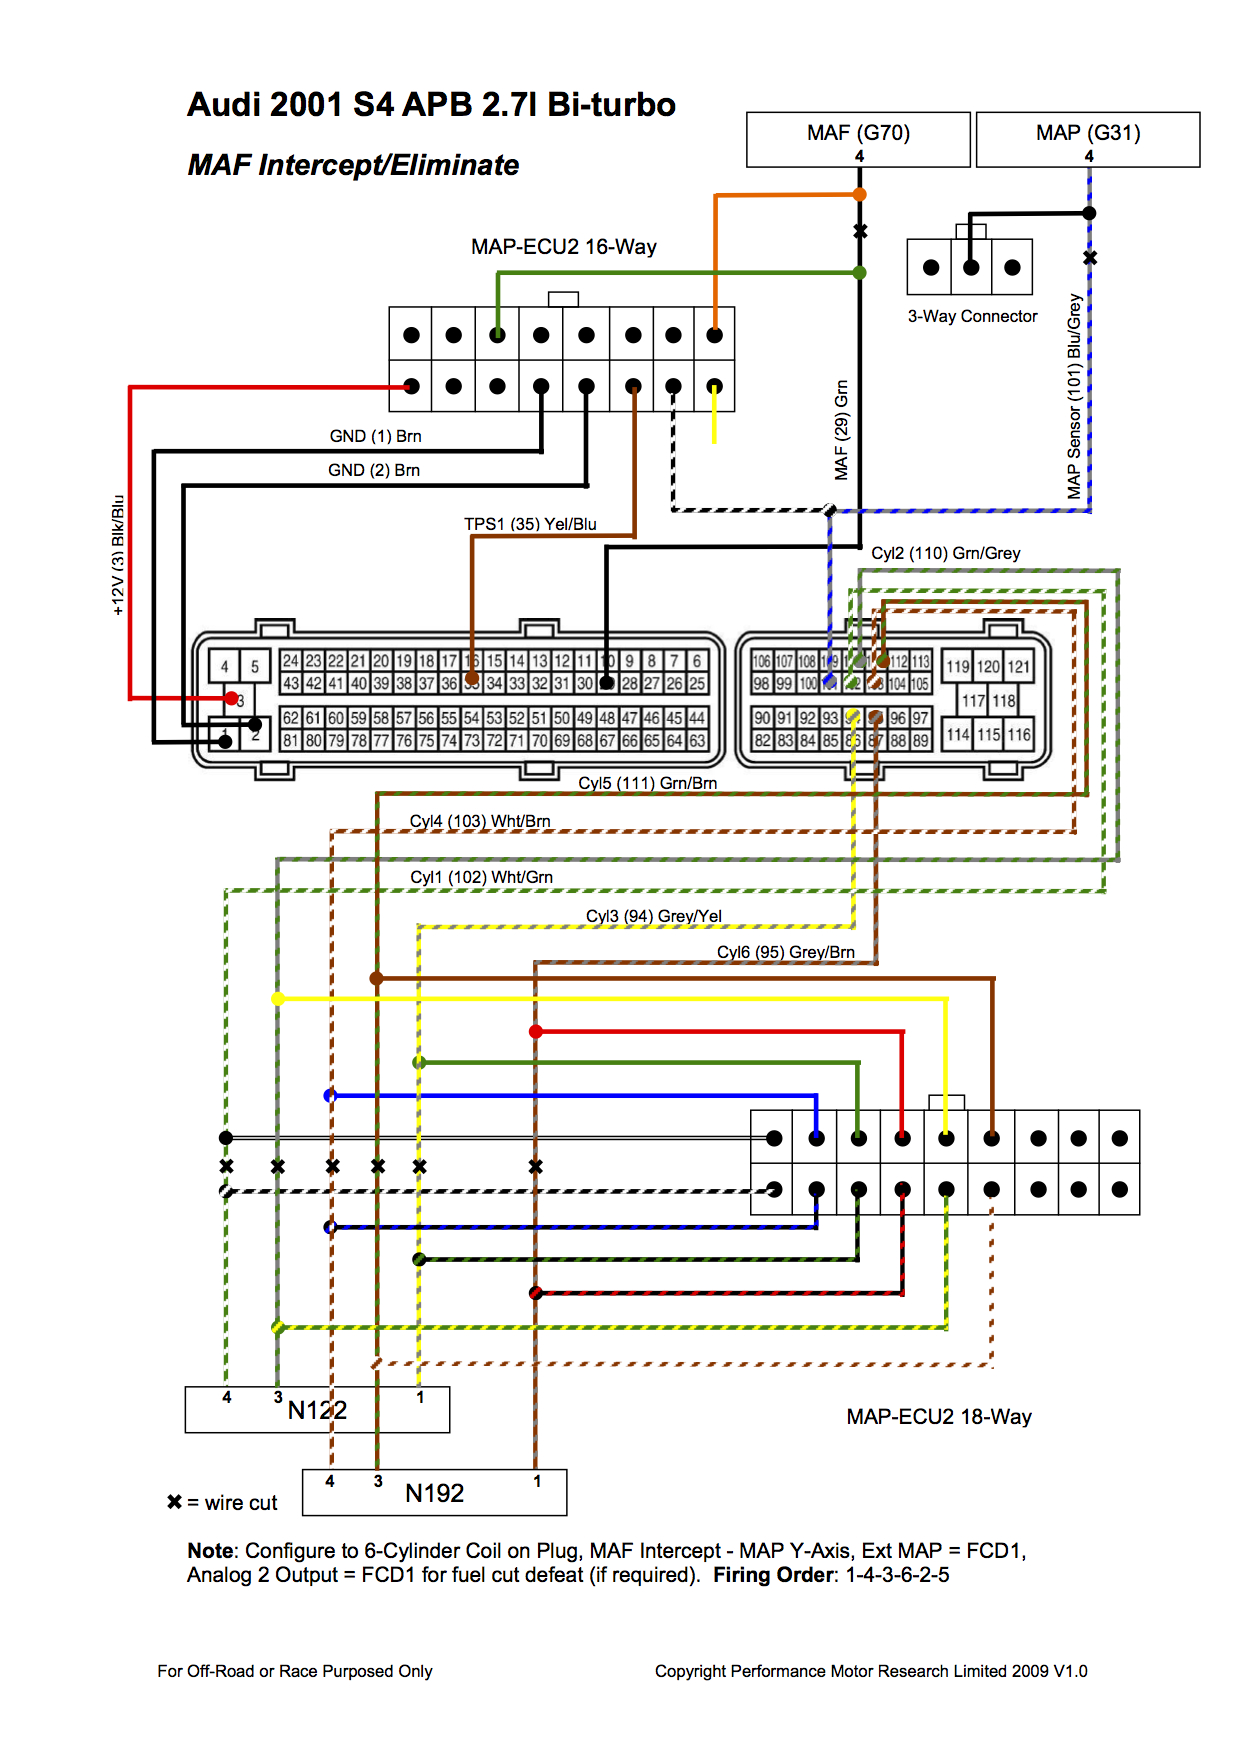 Audi S4 20011 ecu wiring diagram paccar ecu wiring diagram \u2022 wiring diagrams j GM OBD1 Wiring Diagram 1991 at crackthecode.co